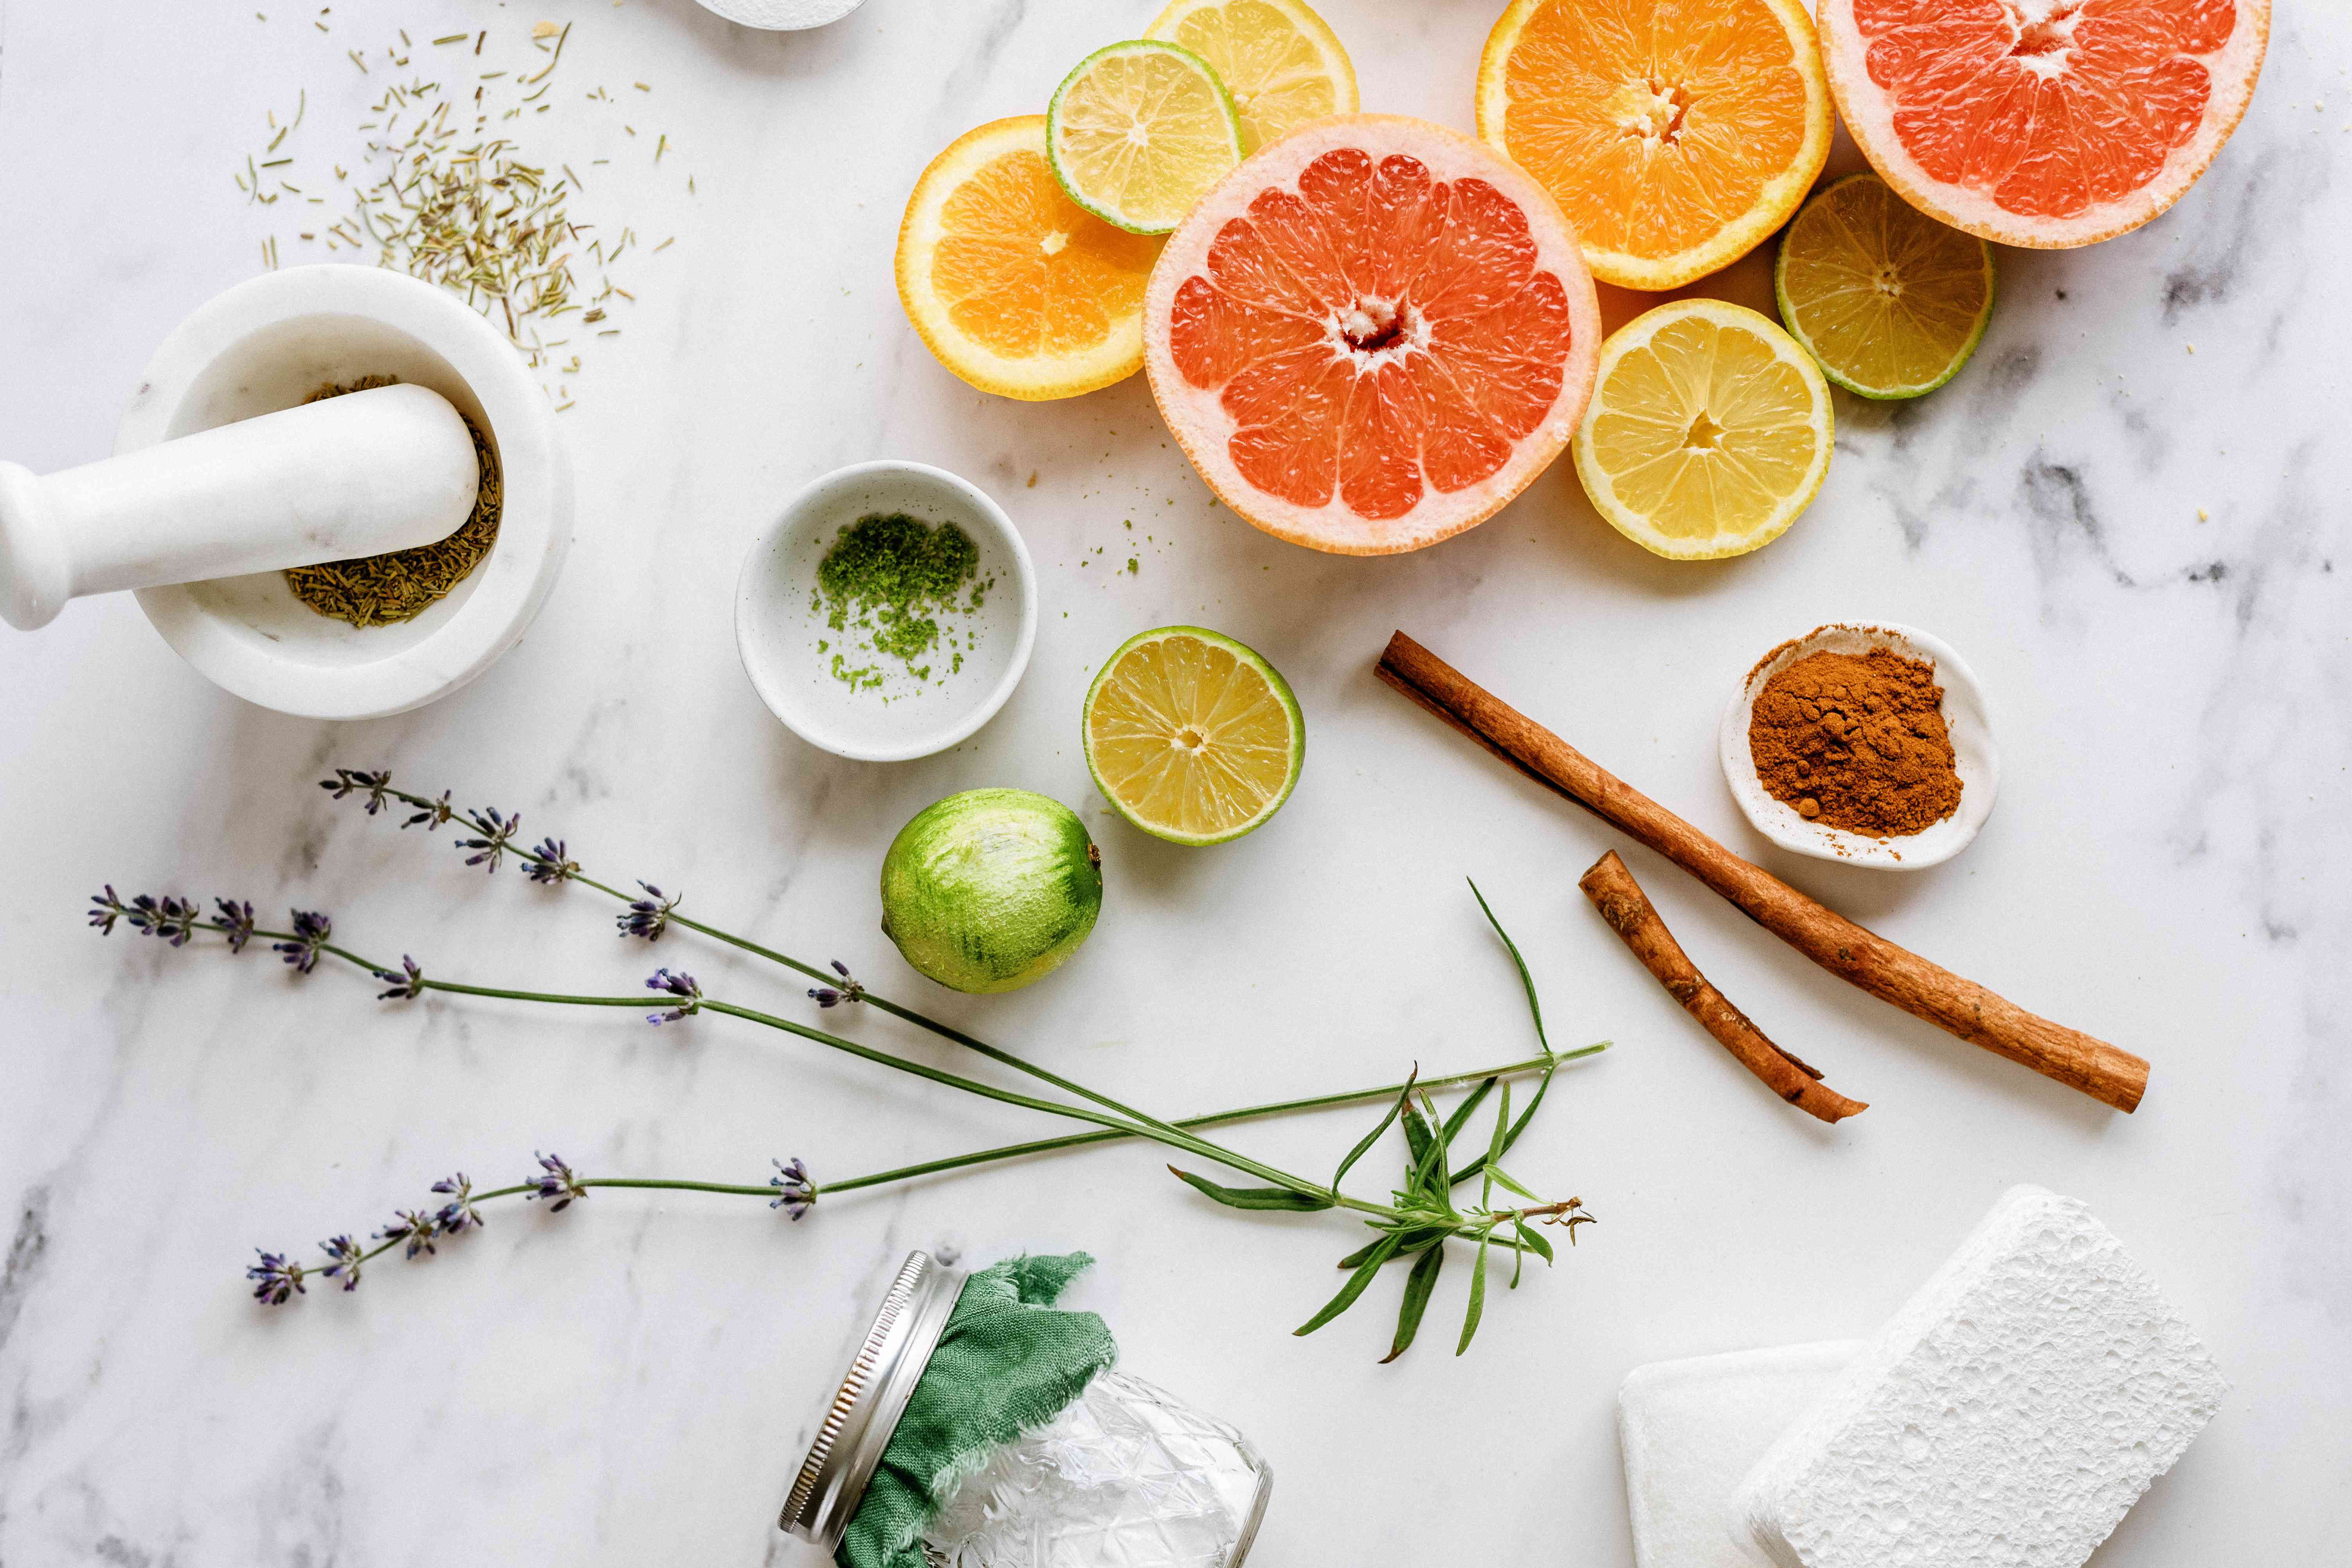 scented items to add to scouring powder